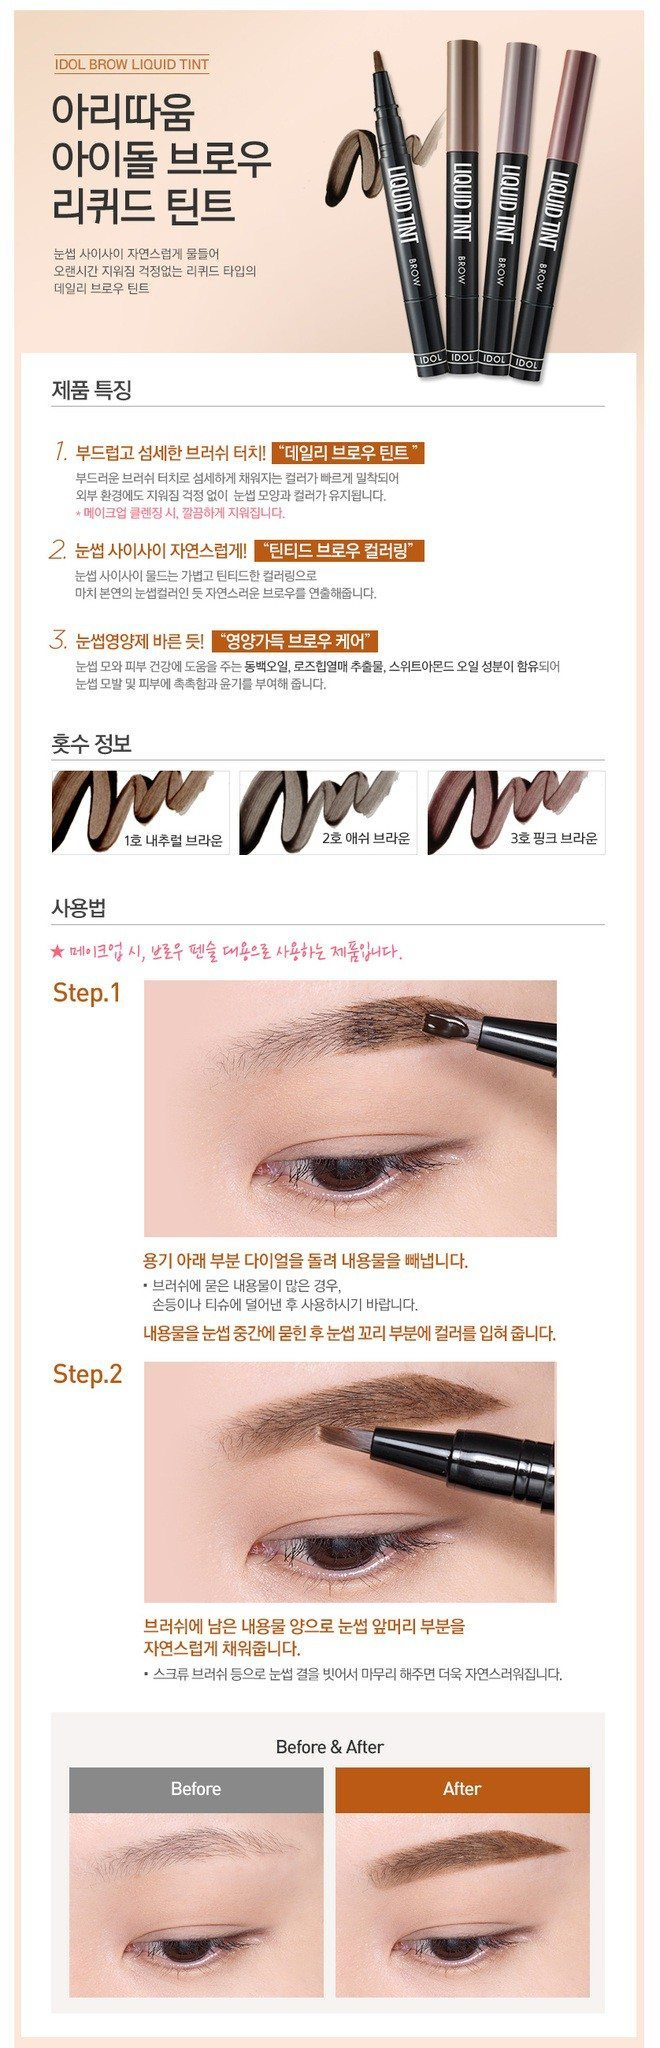 Aritaum IDOL Brow Liquid Tint 1.8g korean cosmetic makeup product online shop malaysia brunei philippines1